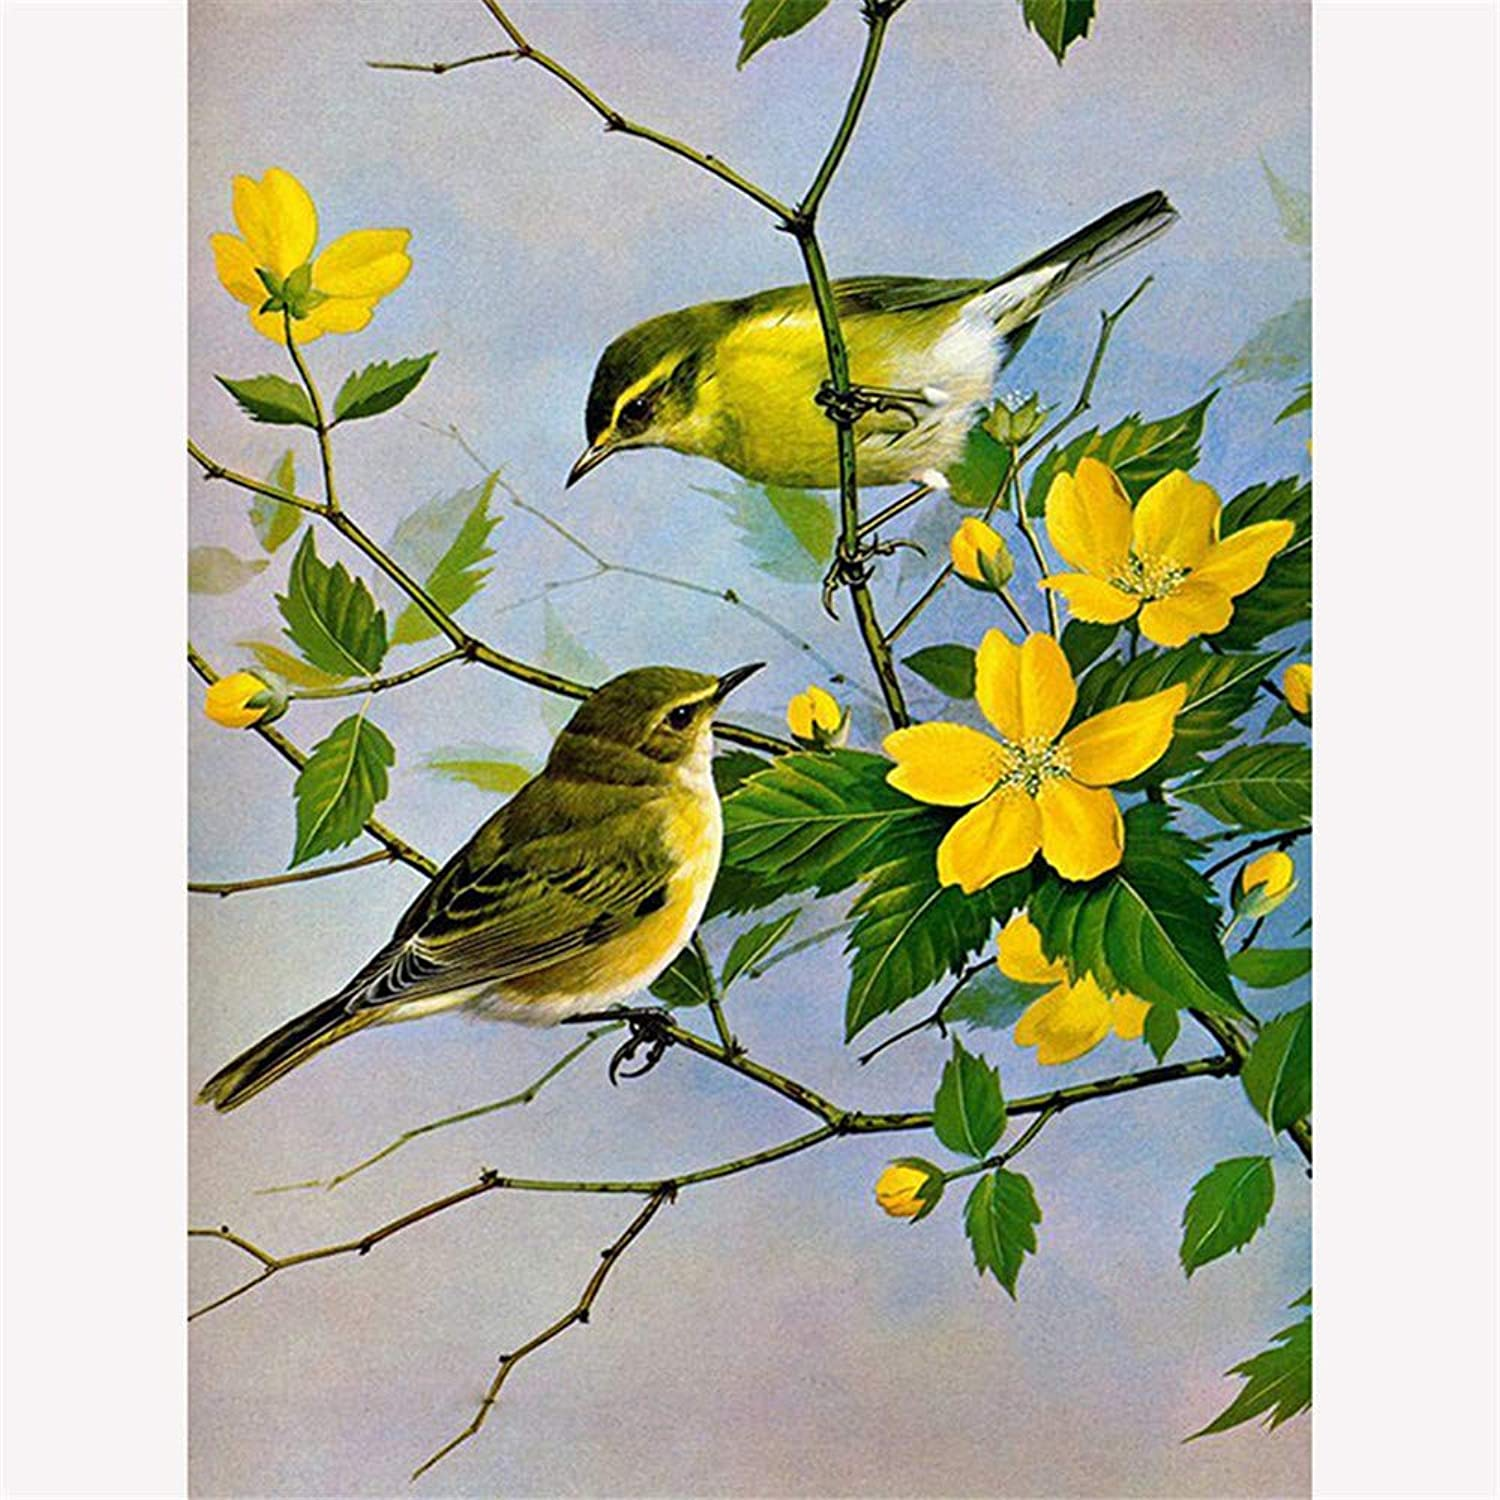 DIY Oil Painting Paint by Number Kit for Adult Kids - Painted Flower Bird,16X20 Inch